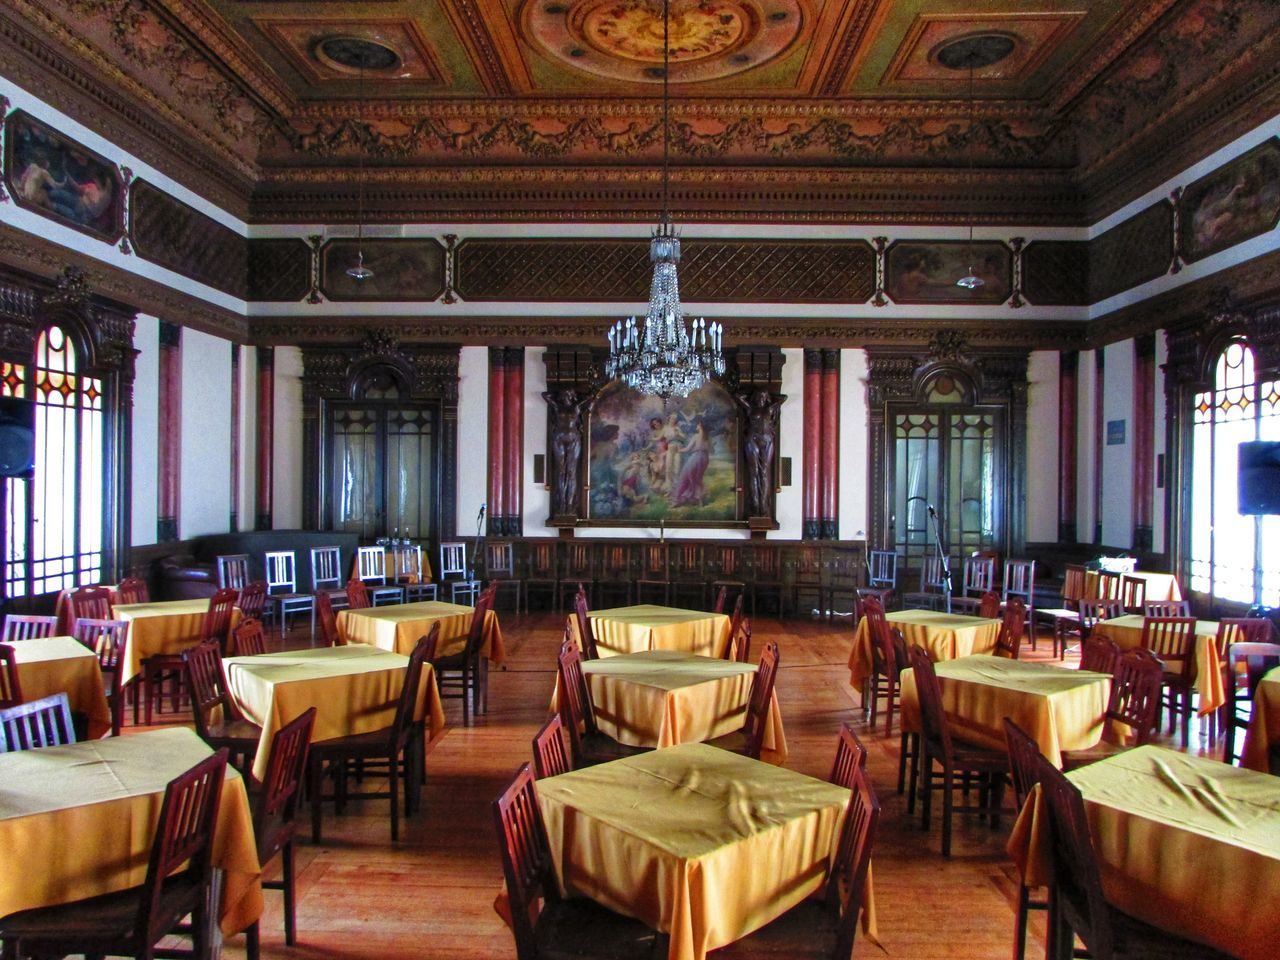 Architecture Ballroom Chair Chairs Chandelier Check This Out Day Decorated Dining Room Dining Table EyeEm Best Shots In A Row Indoors  Luxurious Luxury Natural Light No People Old Room  Ornate Salon Stained Glass Stained Glass Window Table Tables Wood Floor